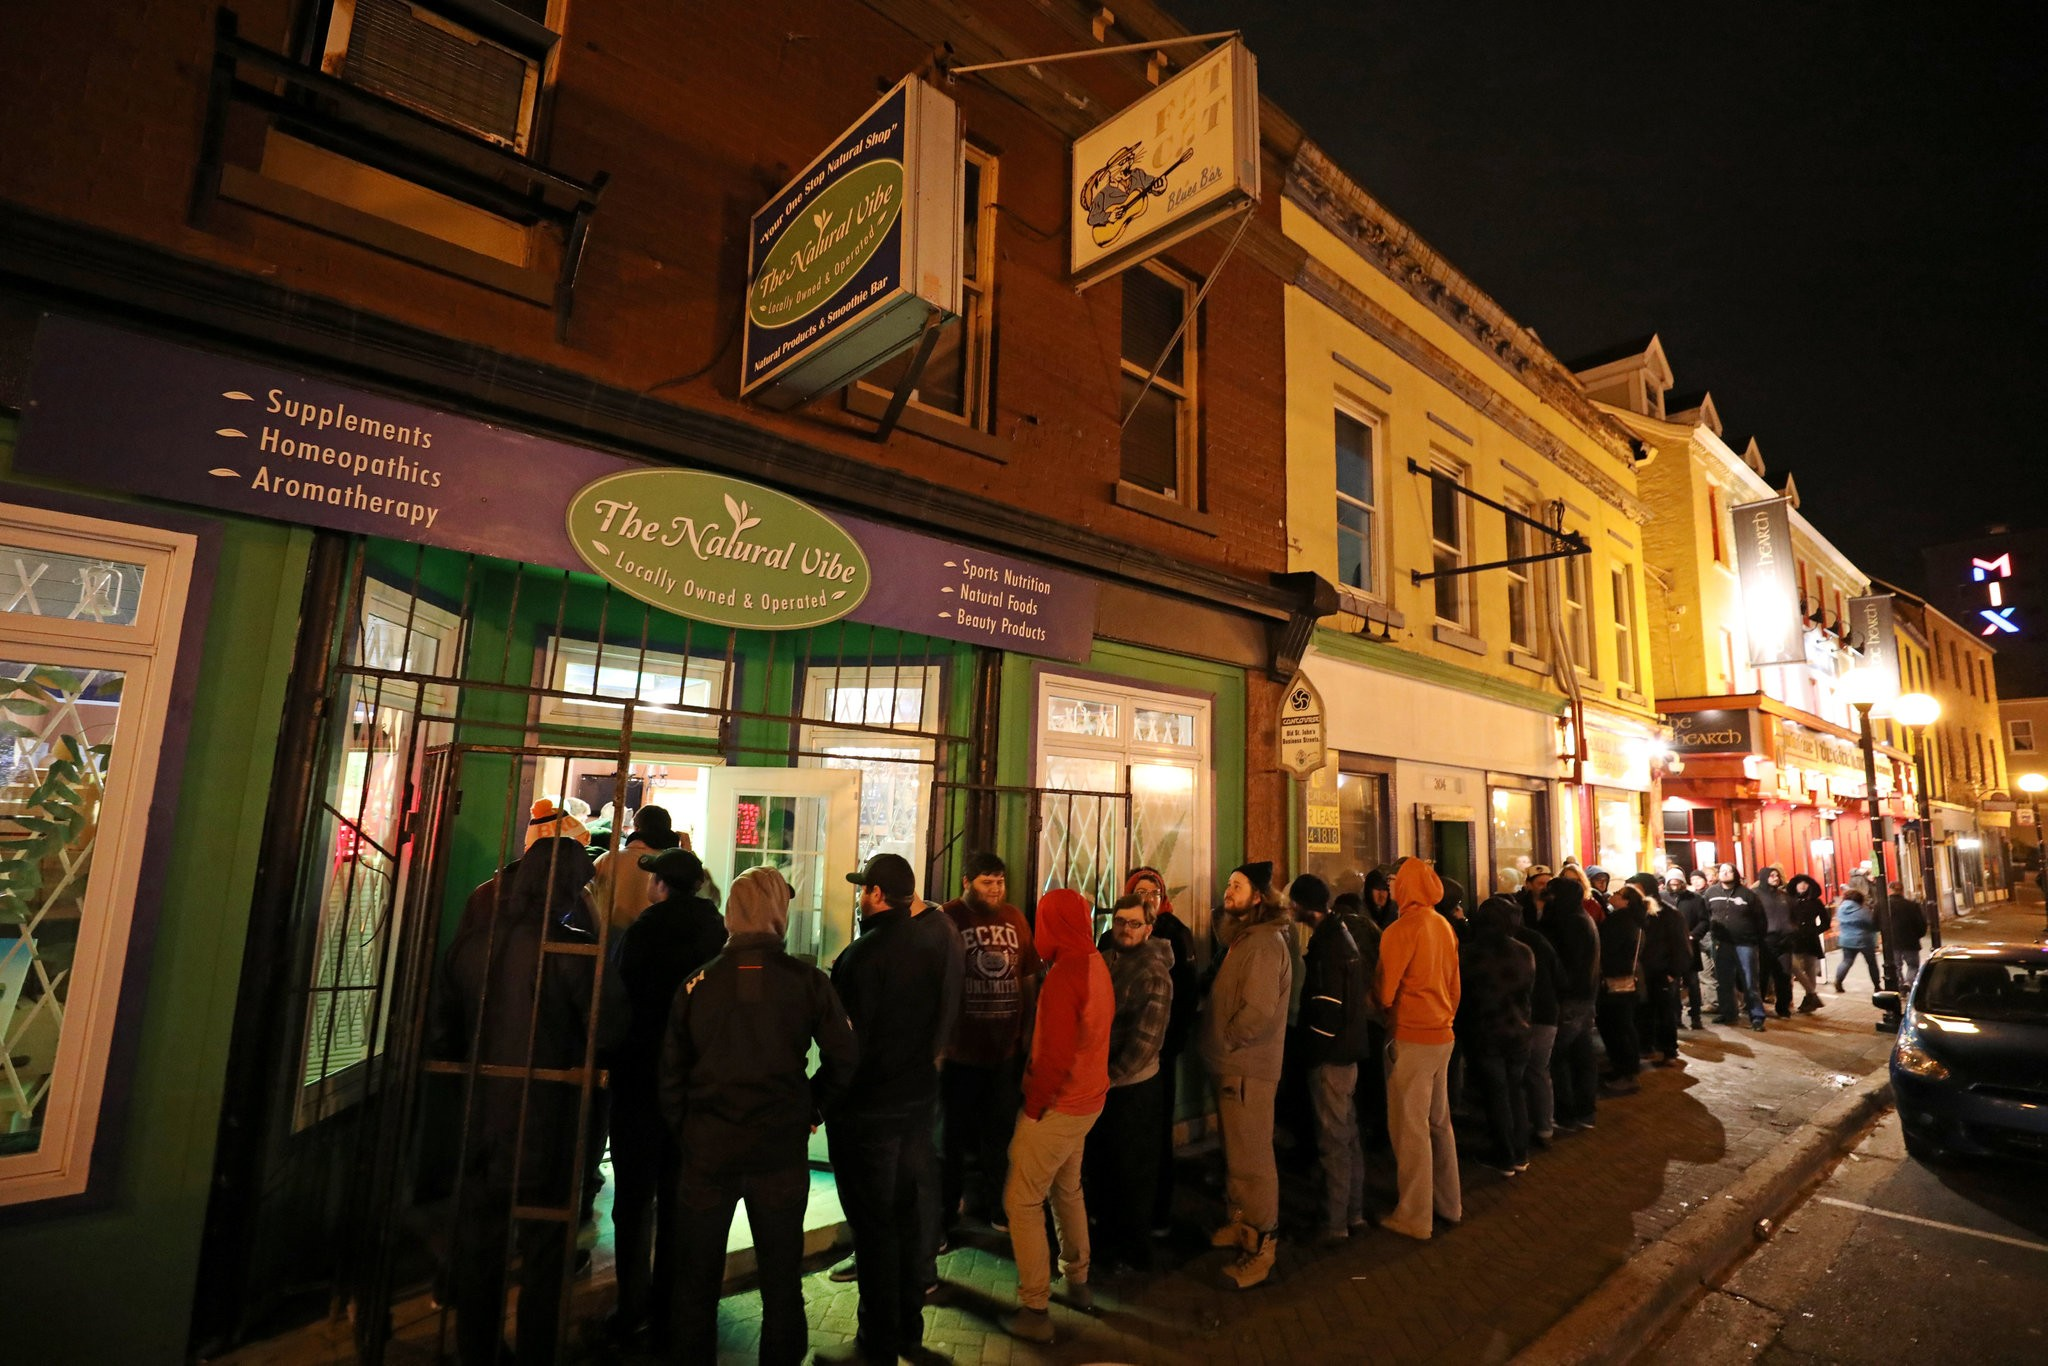 Customers waited outside a store after recreational marijuana went on sale legally in St John's, Newfoundland and Labrador. Credit: Chris Wattie/Reuters